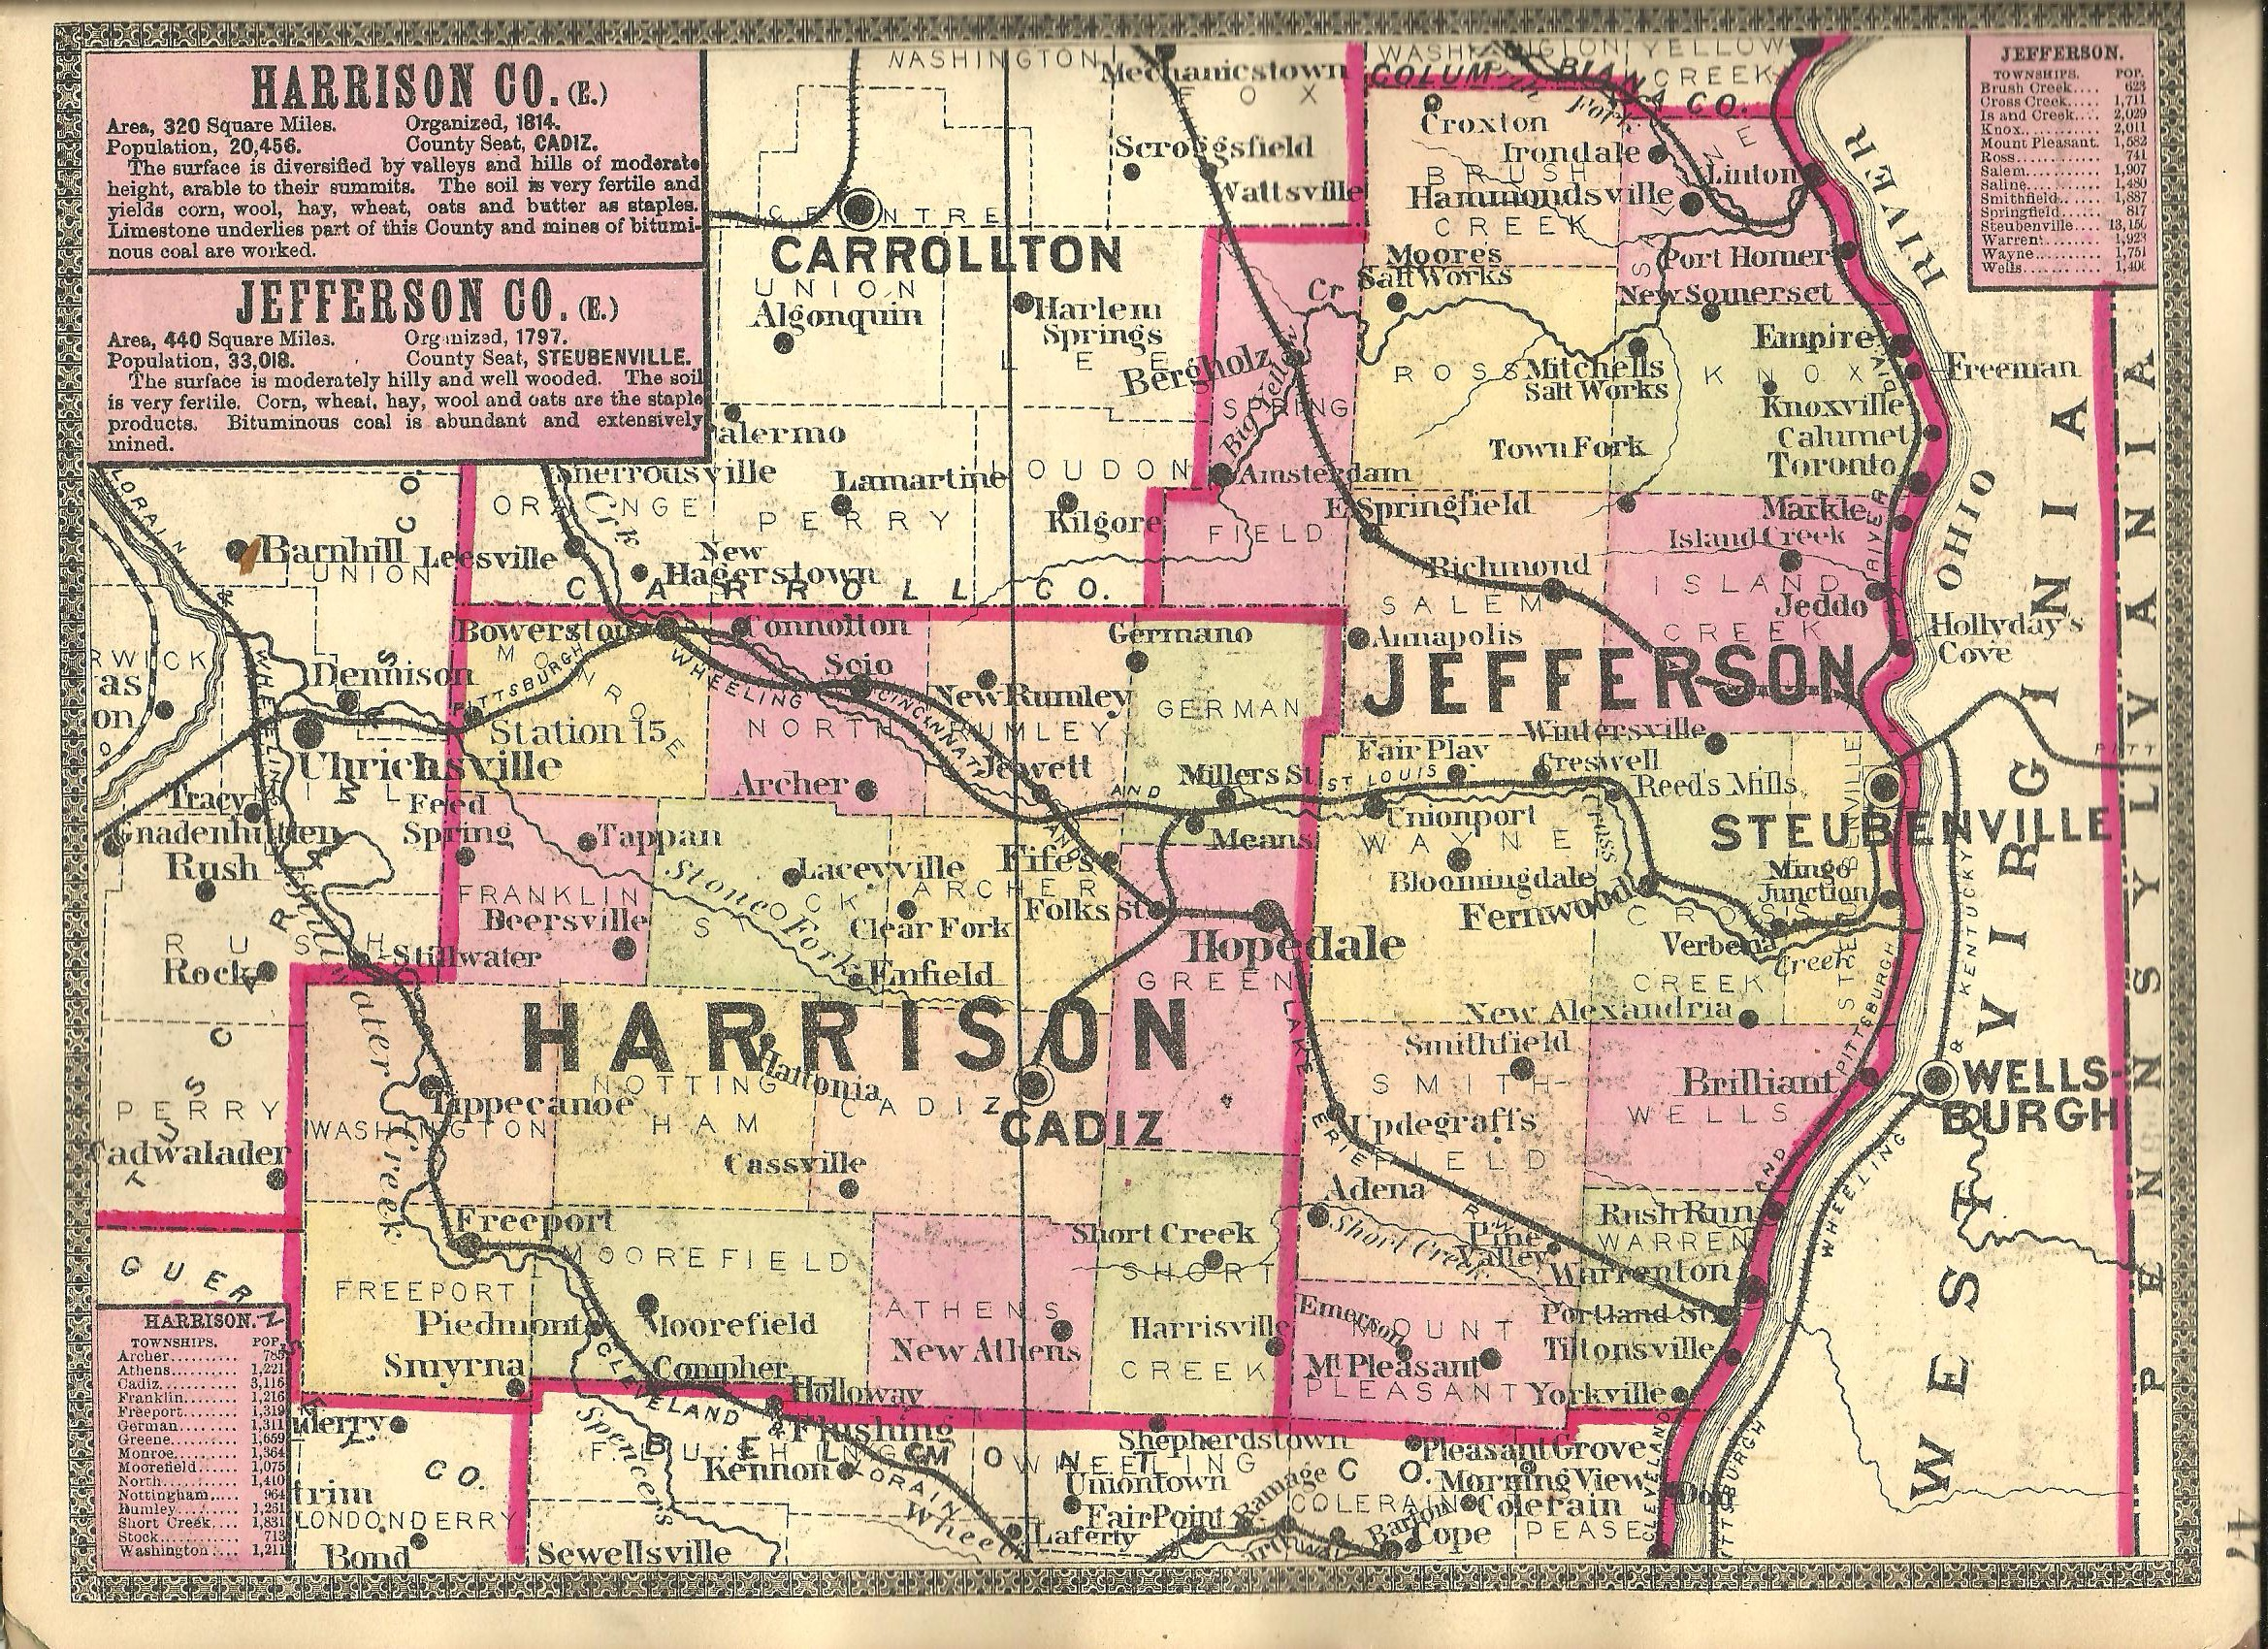 Harrison County Ohio Ghost Town Exploration Co